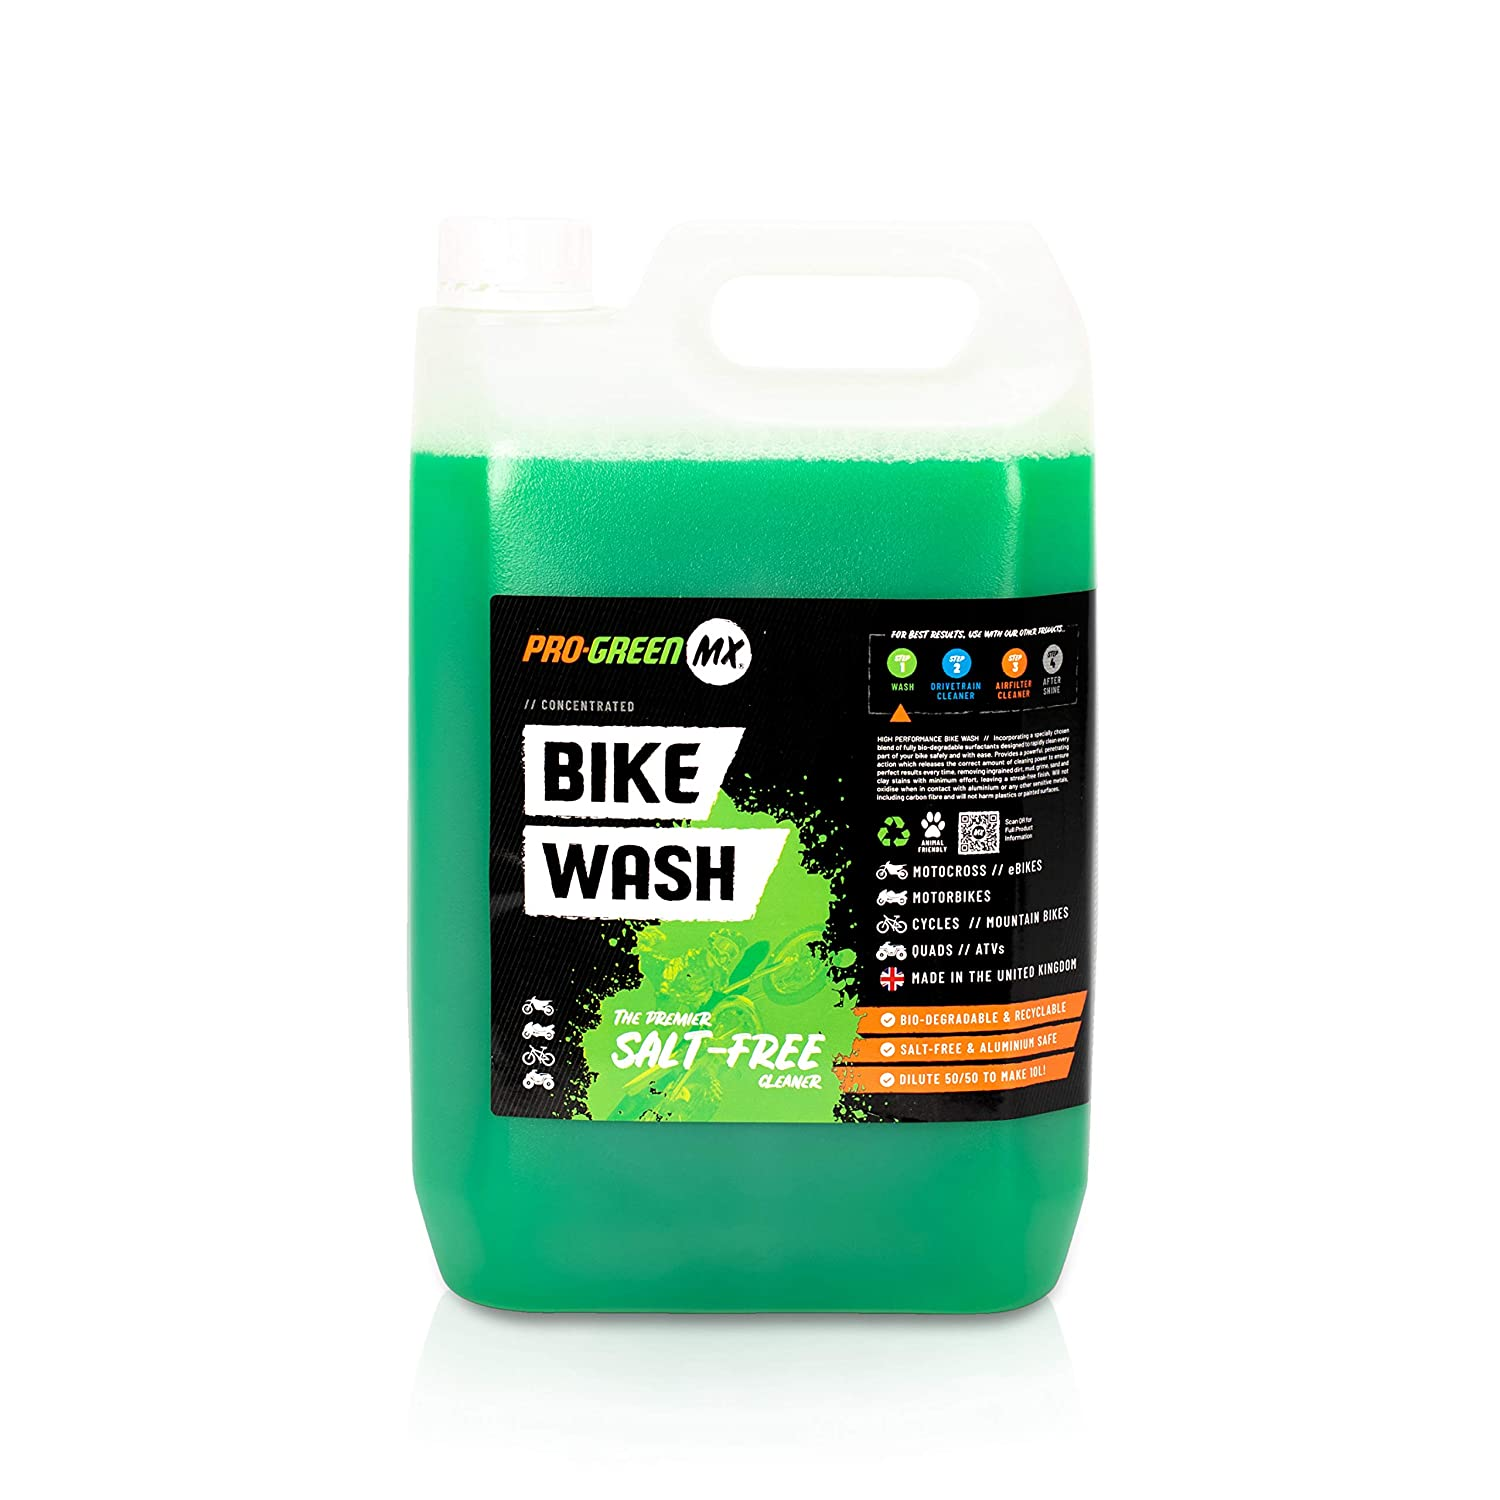 Pro-GreenMX 5ltr Concentrated Bike Wash Pro-GreenMX Ltd